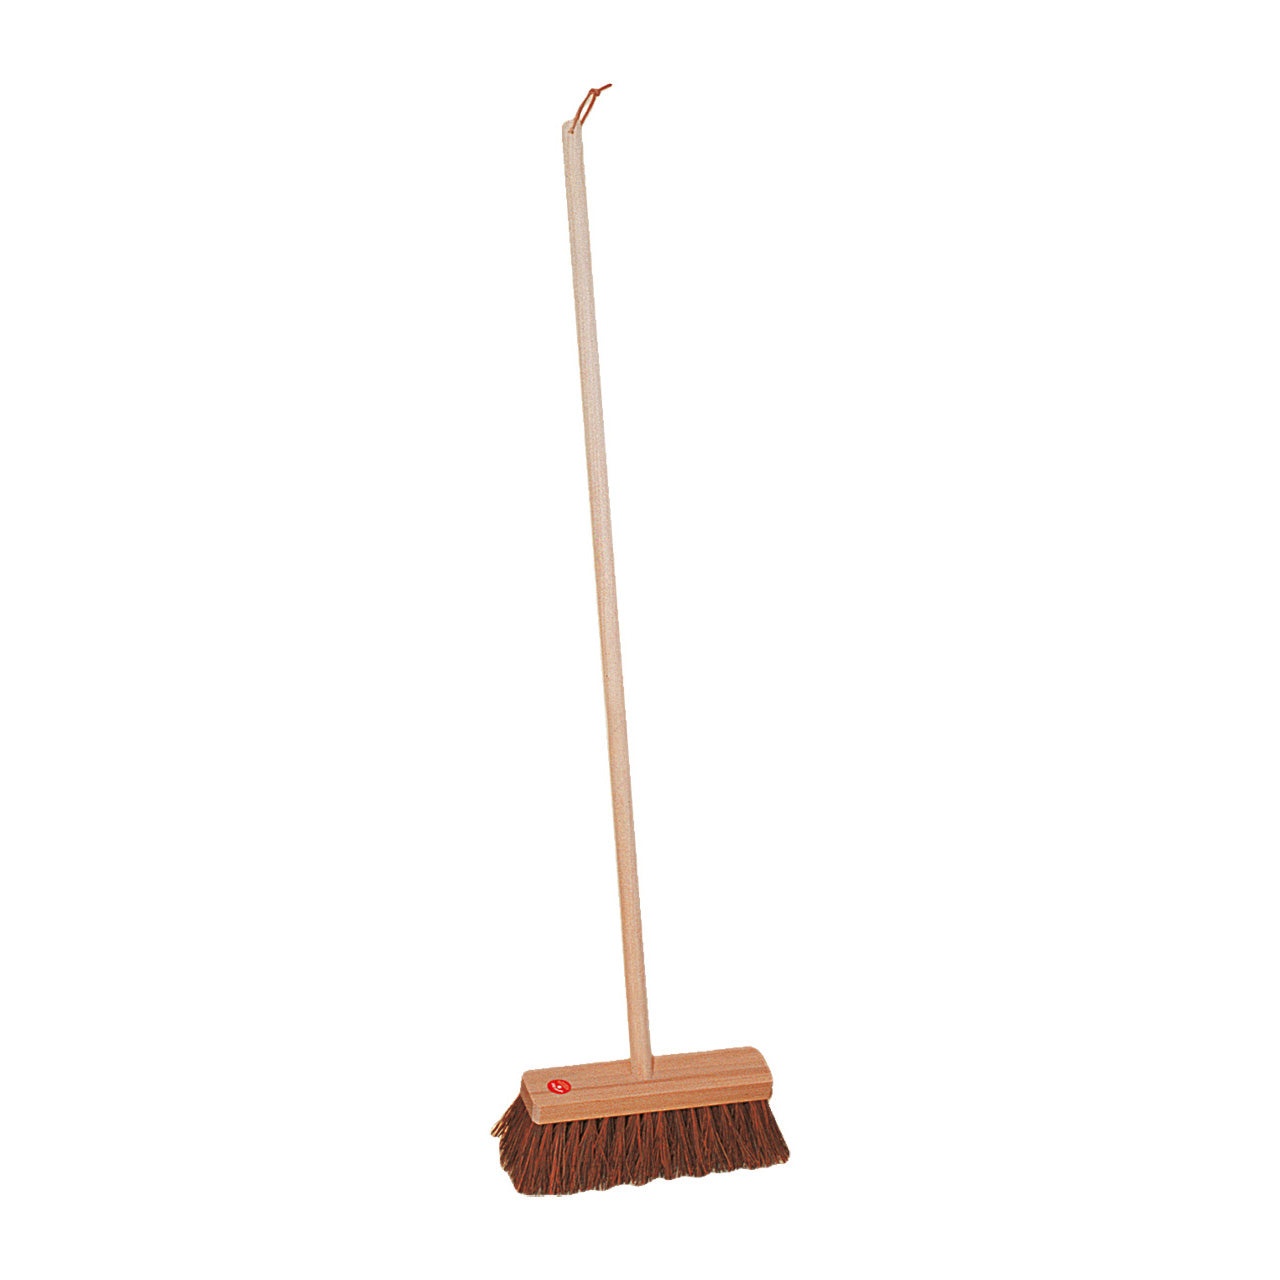 Children's Long Handle Outdoor Broom 90cm for 3 - 8 Year Olds